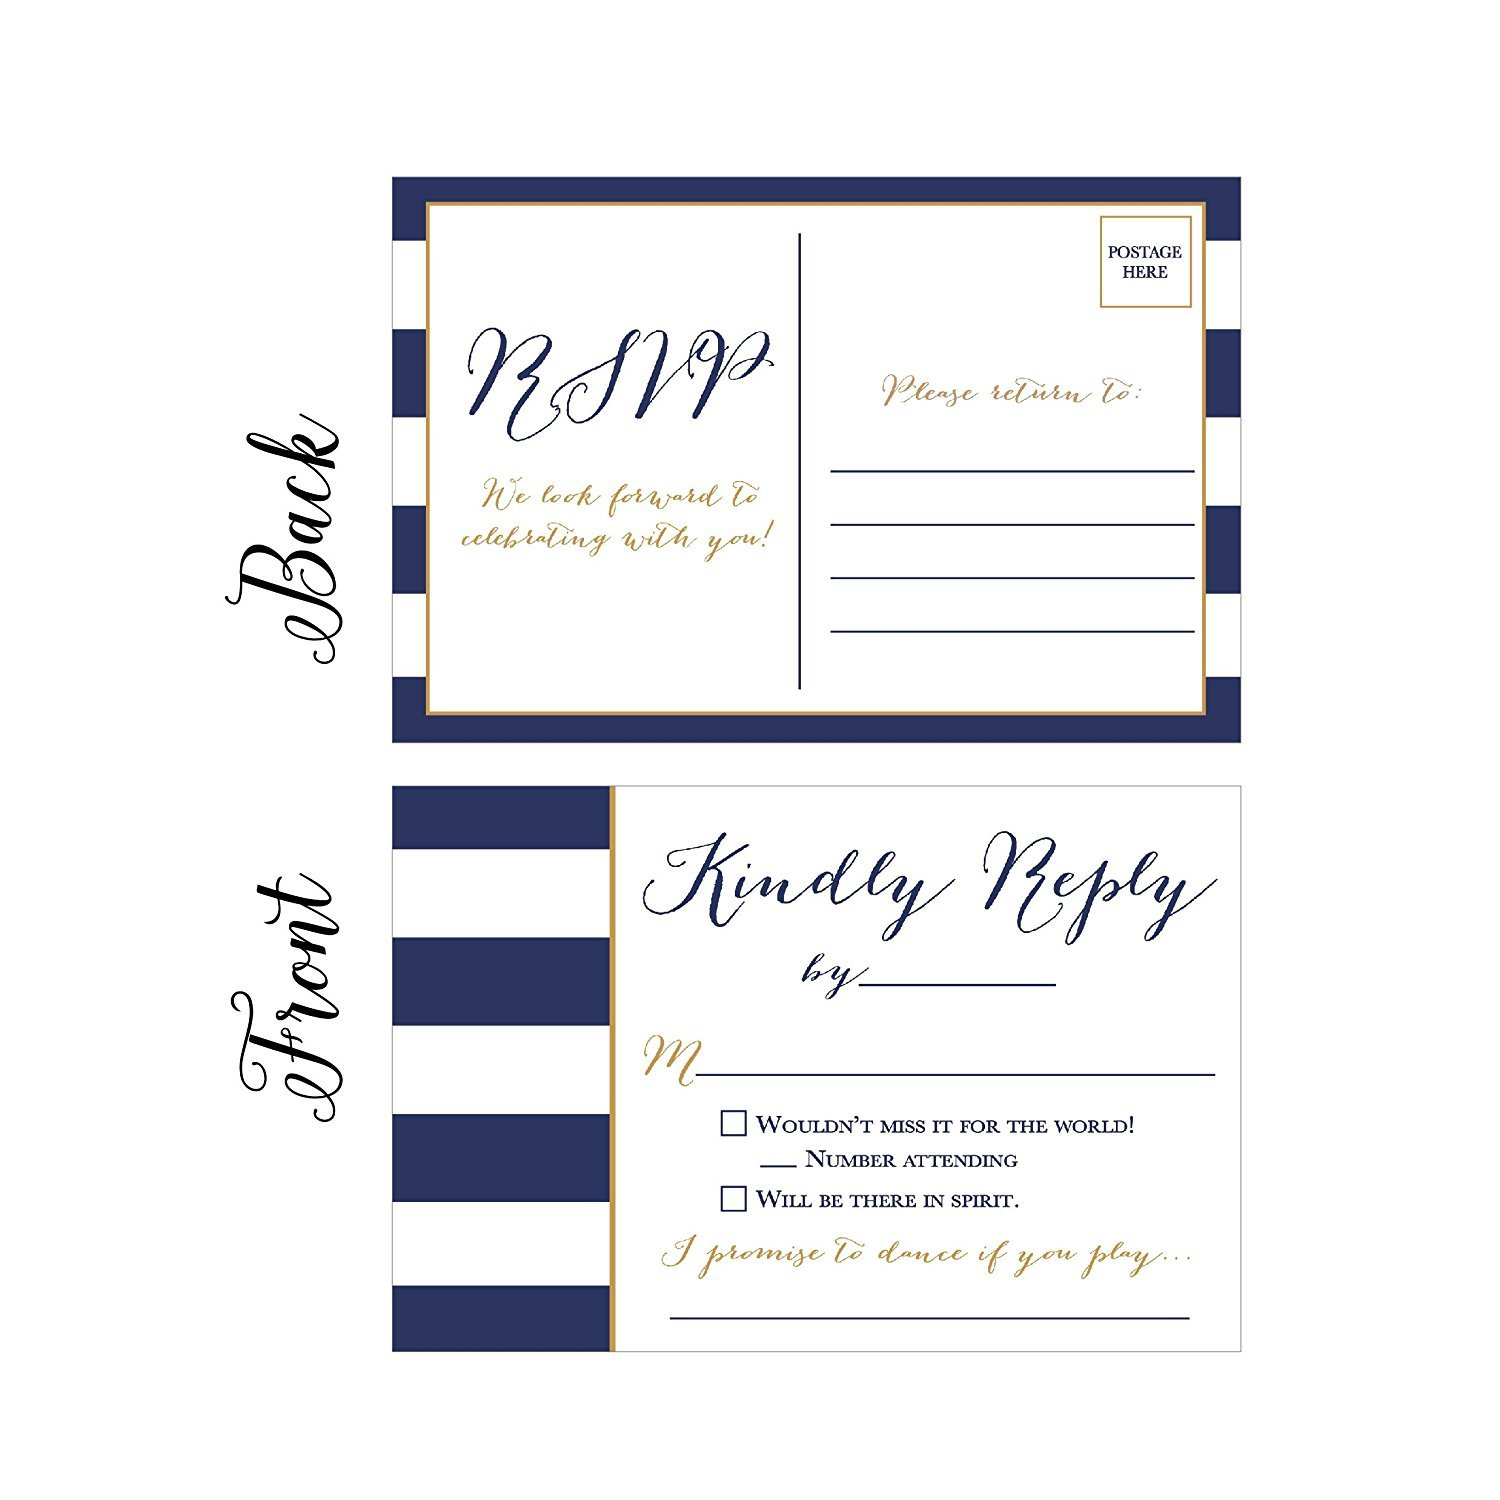 50 Navy RSVP Cards, RSVP Postcards No Envelopes Needed, Response Card, Blank RSVP Reply, RSVP for Wedding, Rehearsal Dinner, Baby Shower, Bridal, Birthday, Engagement, Bachelorette Party Invitations